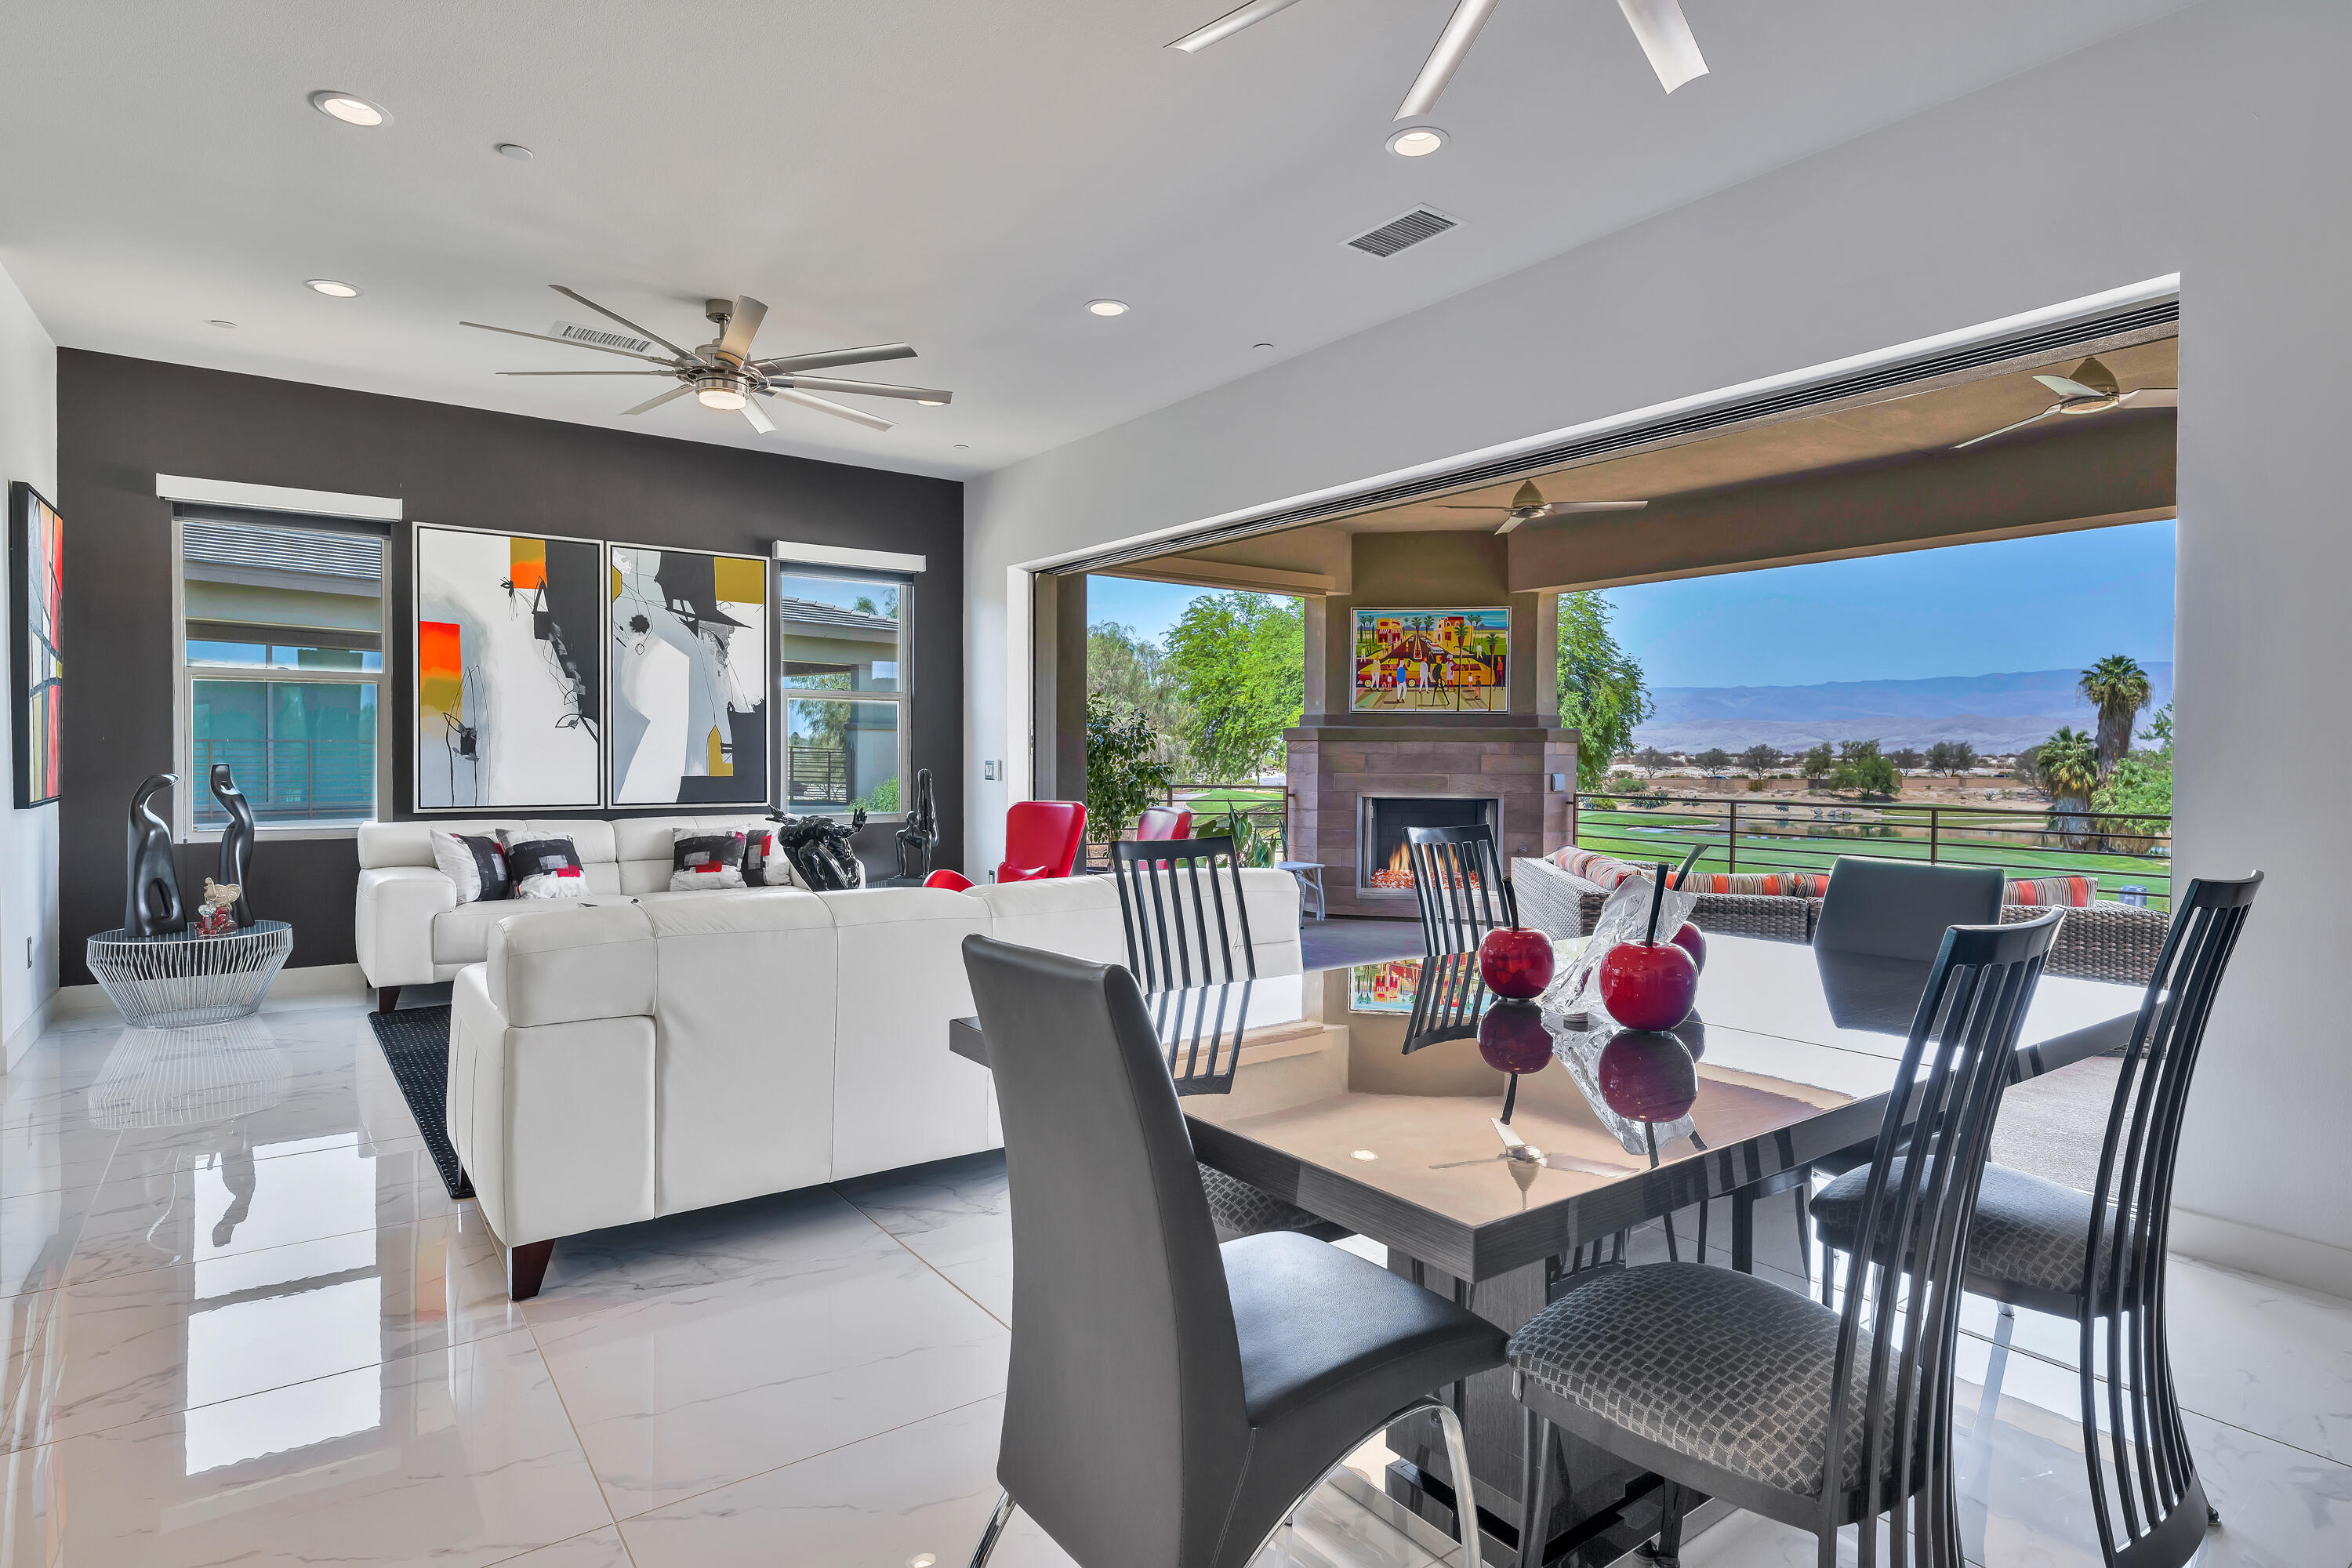 Perhaps the Best property to ever hit the market in the highly desired gated community The Retreat at Desert Willow. This stunning Desert Contemporary home has been highly upgraded including polished tile floors, LED lighting, remote control window coverings with solar shades and Quartz bathroom countertops. The designer kitchen features stylish white cabinetry, Quartz countertops & backsplash, oversized island with a double waterfall edge, Stainless-Steel appliances and opens to the dining area. The Great Room has pocket sliding doors opening to the oversized 28 ft covered patio with fireplace and privacy shade creating the ultimate indoor / outdoor living space. This upper unit offers 3 spacious bedrooms, 3 bathrooms, a sitting area, tech area and 2-car attached garage complete with air conditioning. The best part of all is the home has an elevator so you can avoid the stairs if so desired. With the turnkey convenience and low maintenance of a condo community The Retreat amenities are five-star resort quality with a large pool & spa, a lap swimming pool, gym, community room with pool and ping pong tables and beautifully landscaped grounds all around. Plus, private golf cart access to the impeccable Desert Willow Resort including discounts and access privileges offered at no other community. Offered fully furnished and impeccably maintained, once you move-in every day in this home will feel like you're on vacation.